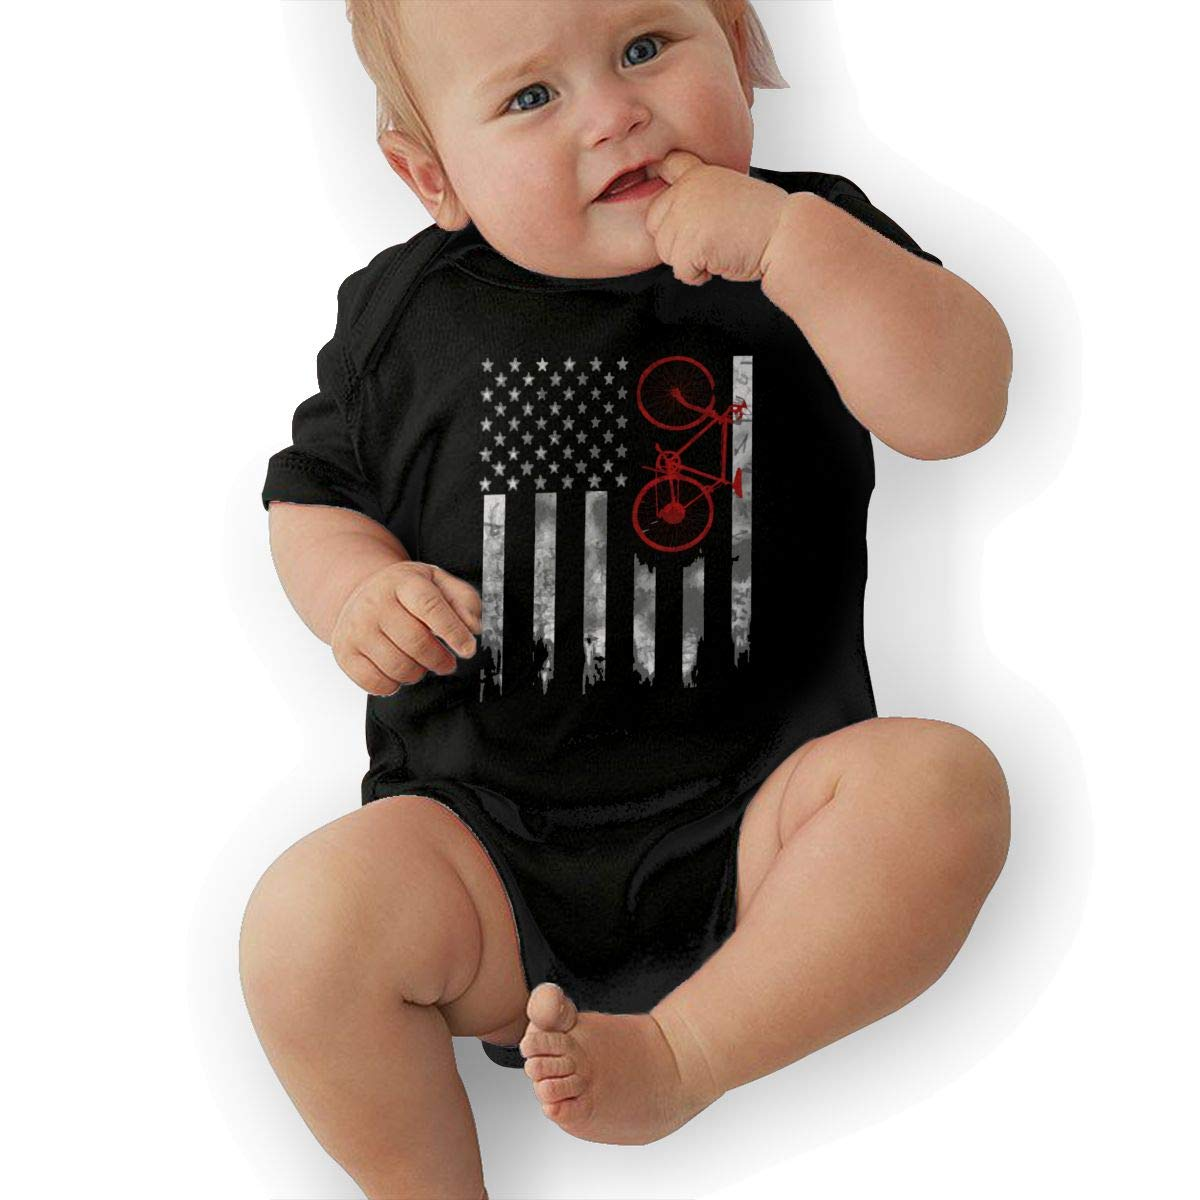 Short Sleeve Cotton Bodysuit for Baby Boys and Girls Cute Bicycle Flag Playsuit